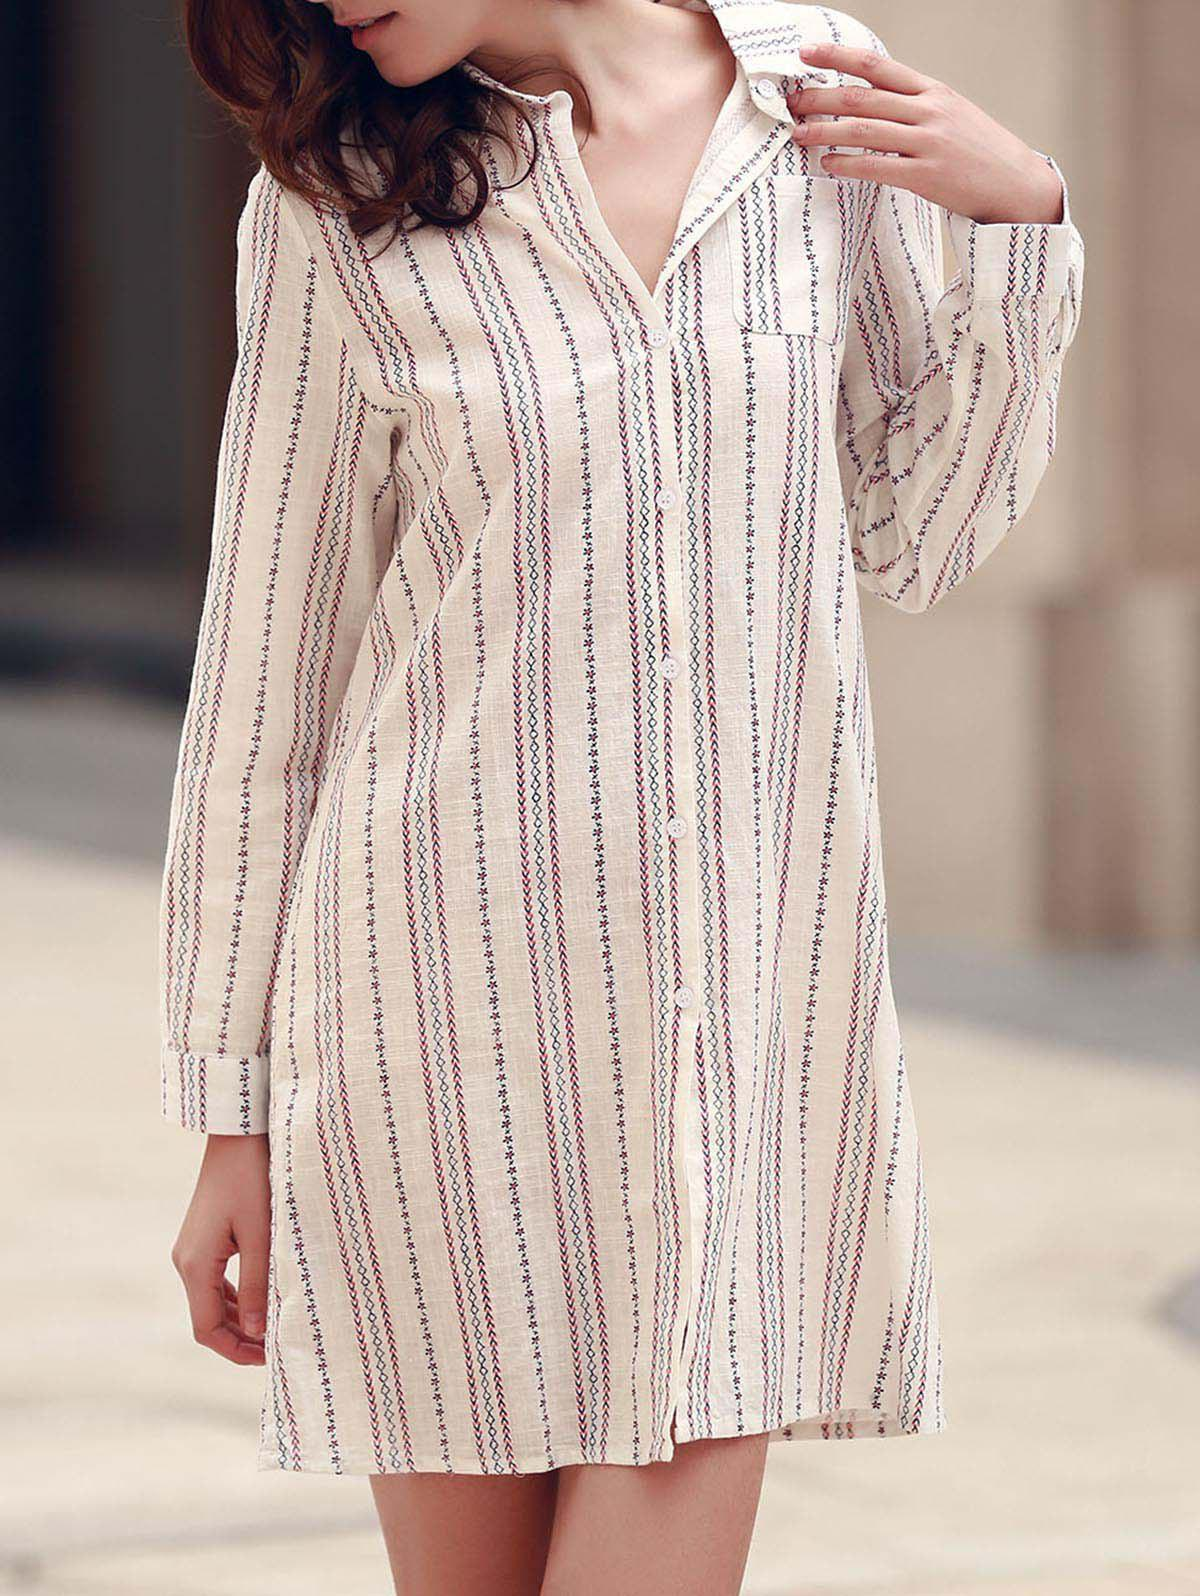 Stylish Vertical Striped Long Sleeve Shirt Dress For Women - CRYSTAL CREAM S